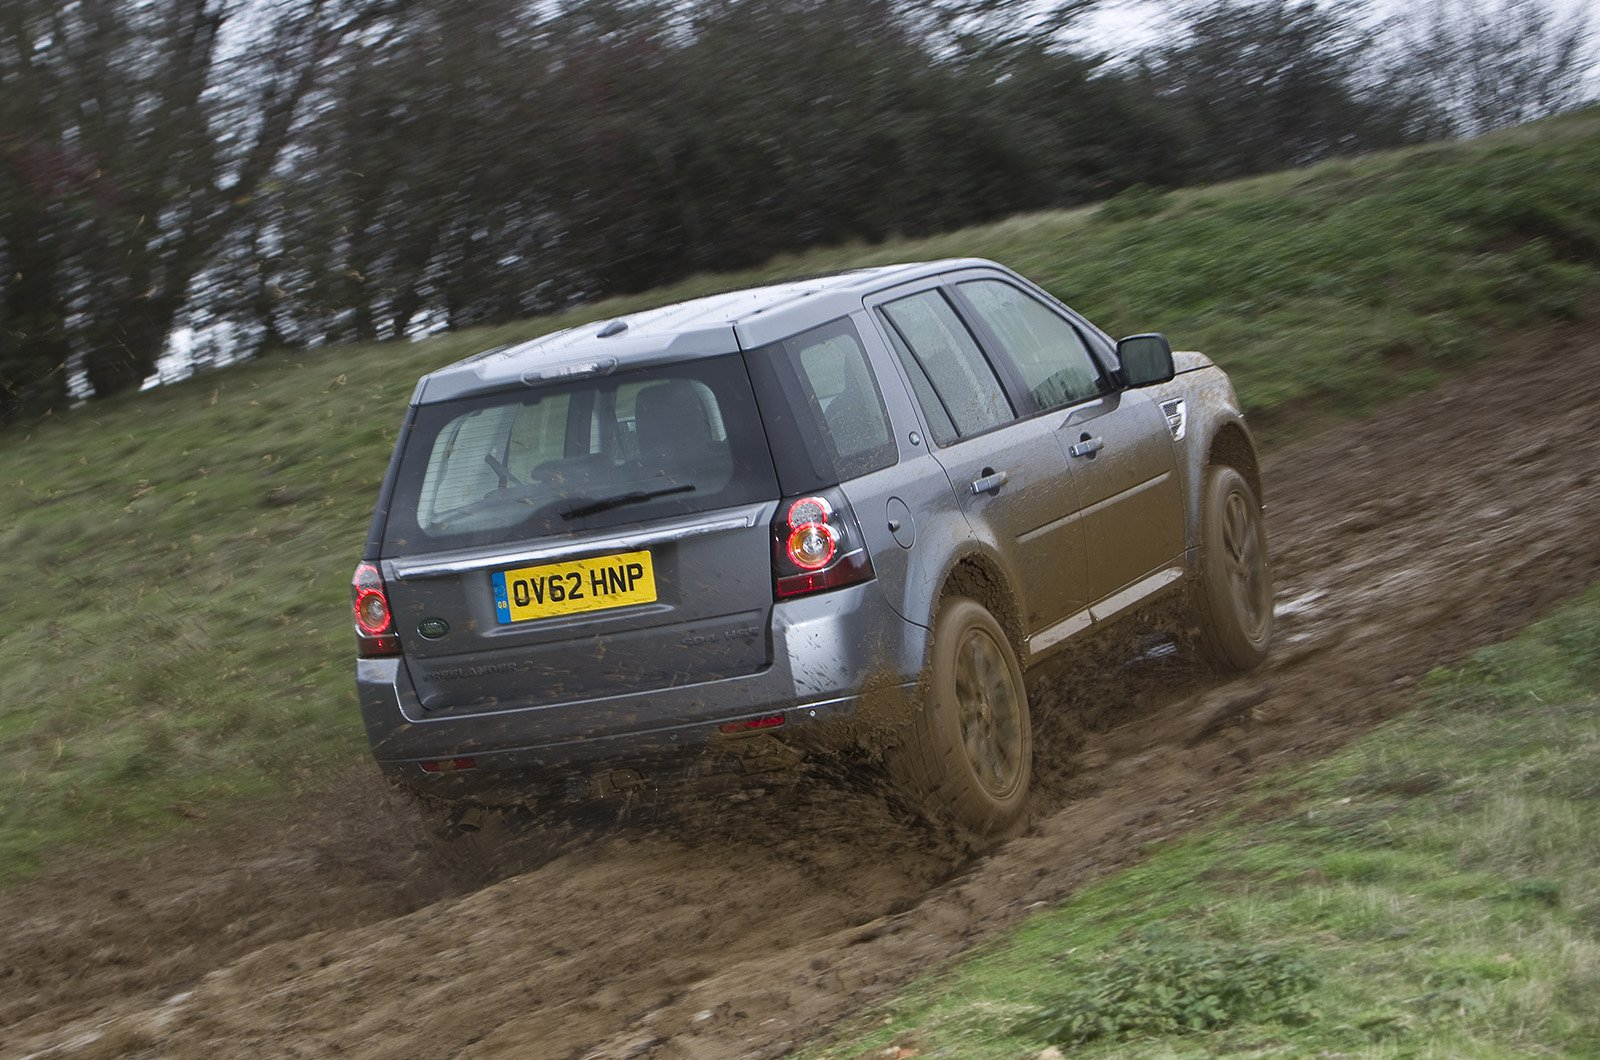 Land Rover Freelander rear up muddy hill